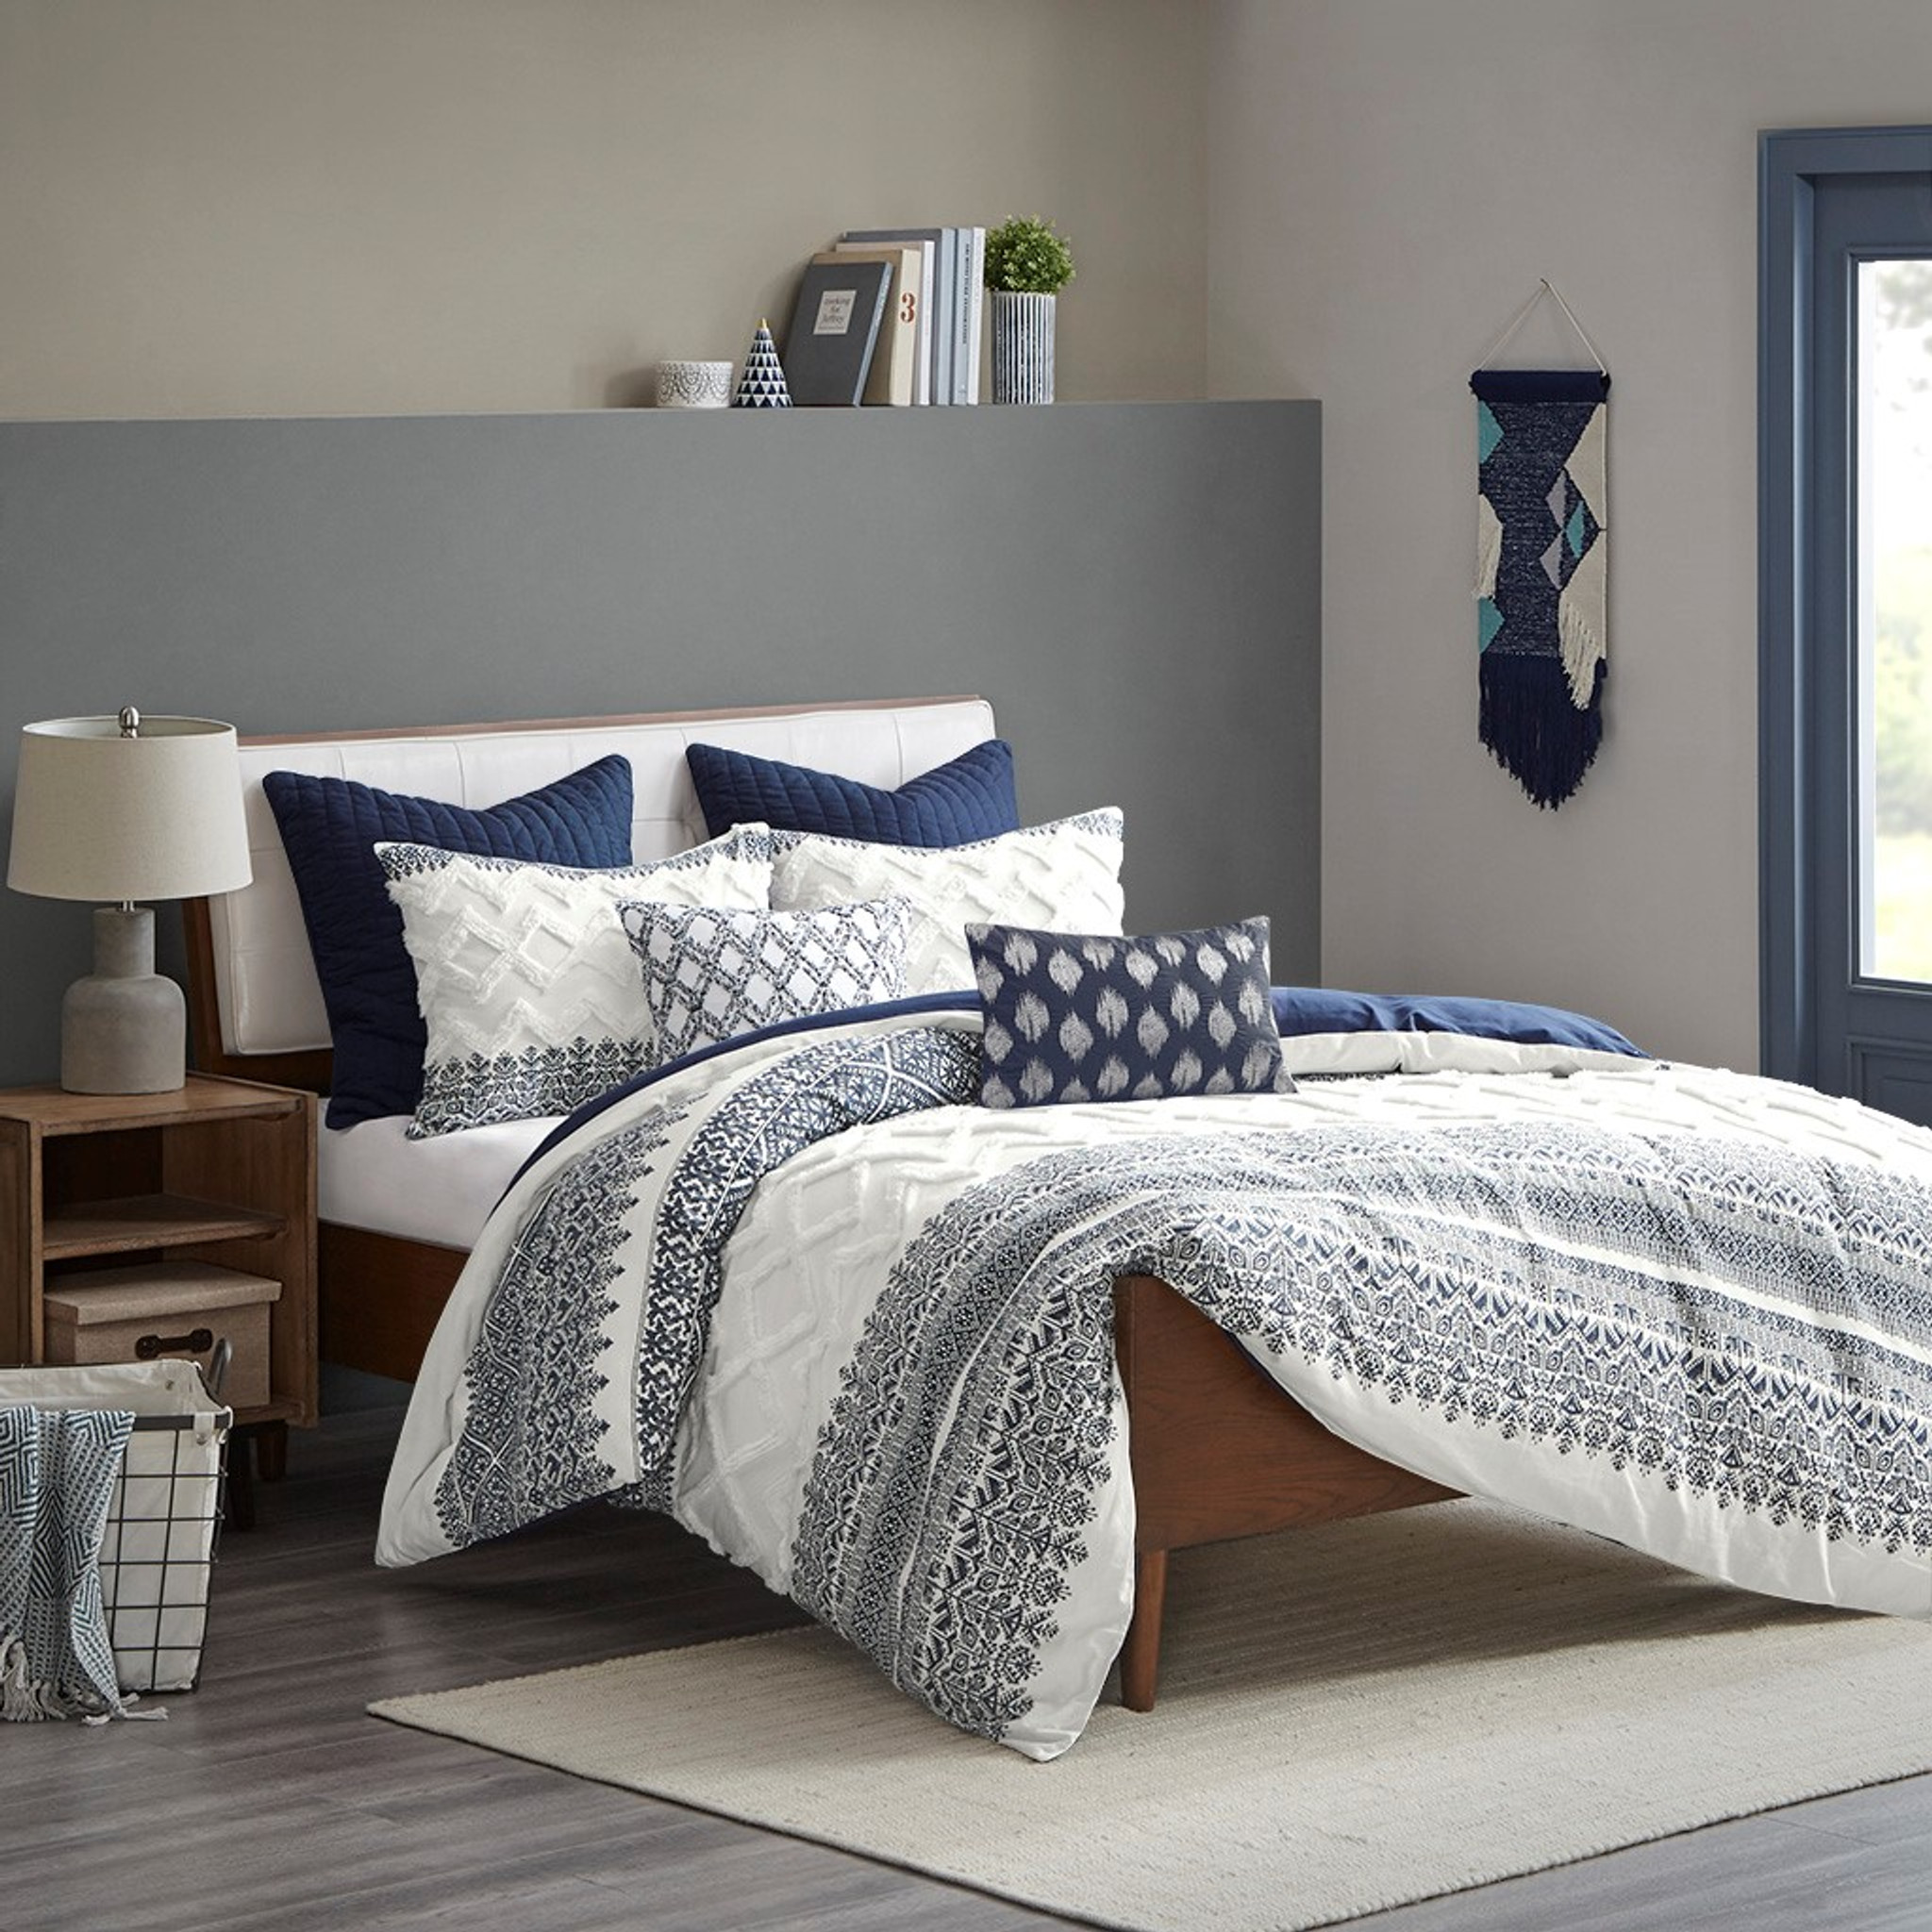 Malibu Boho Navy And White Comforter Set King Caron S Beach House